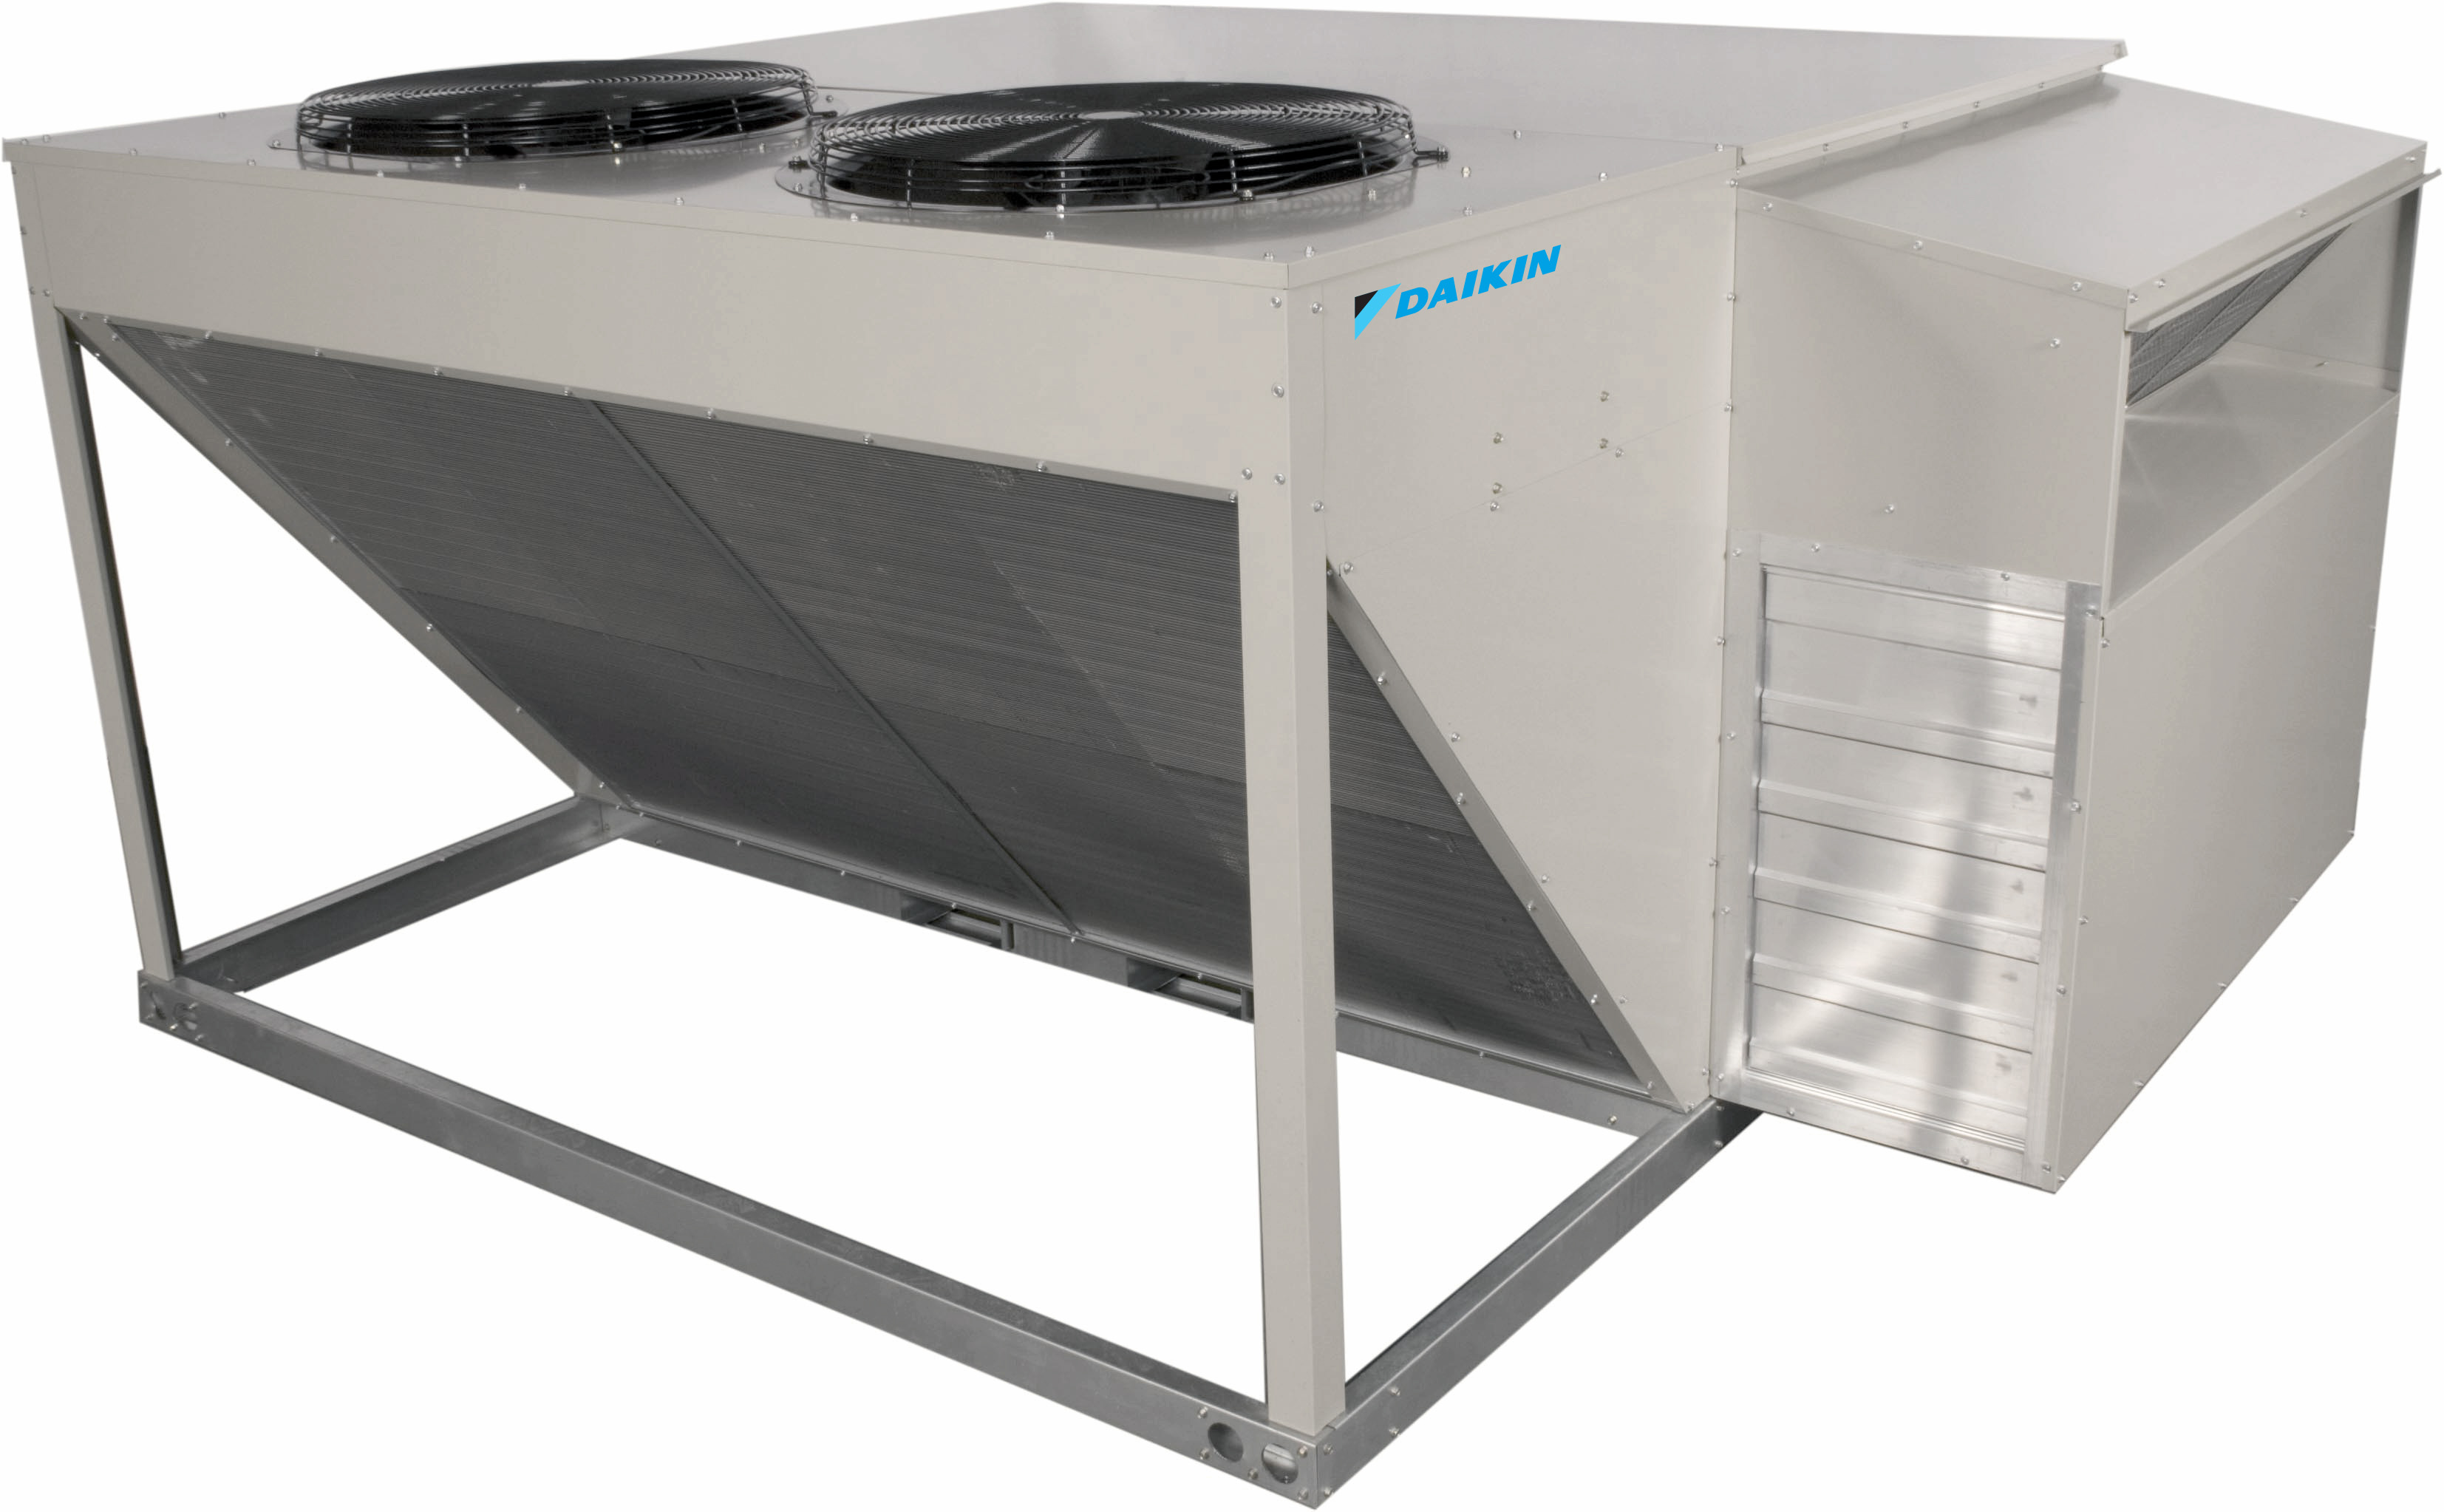 The Daikin Rebel